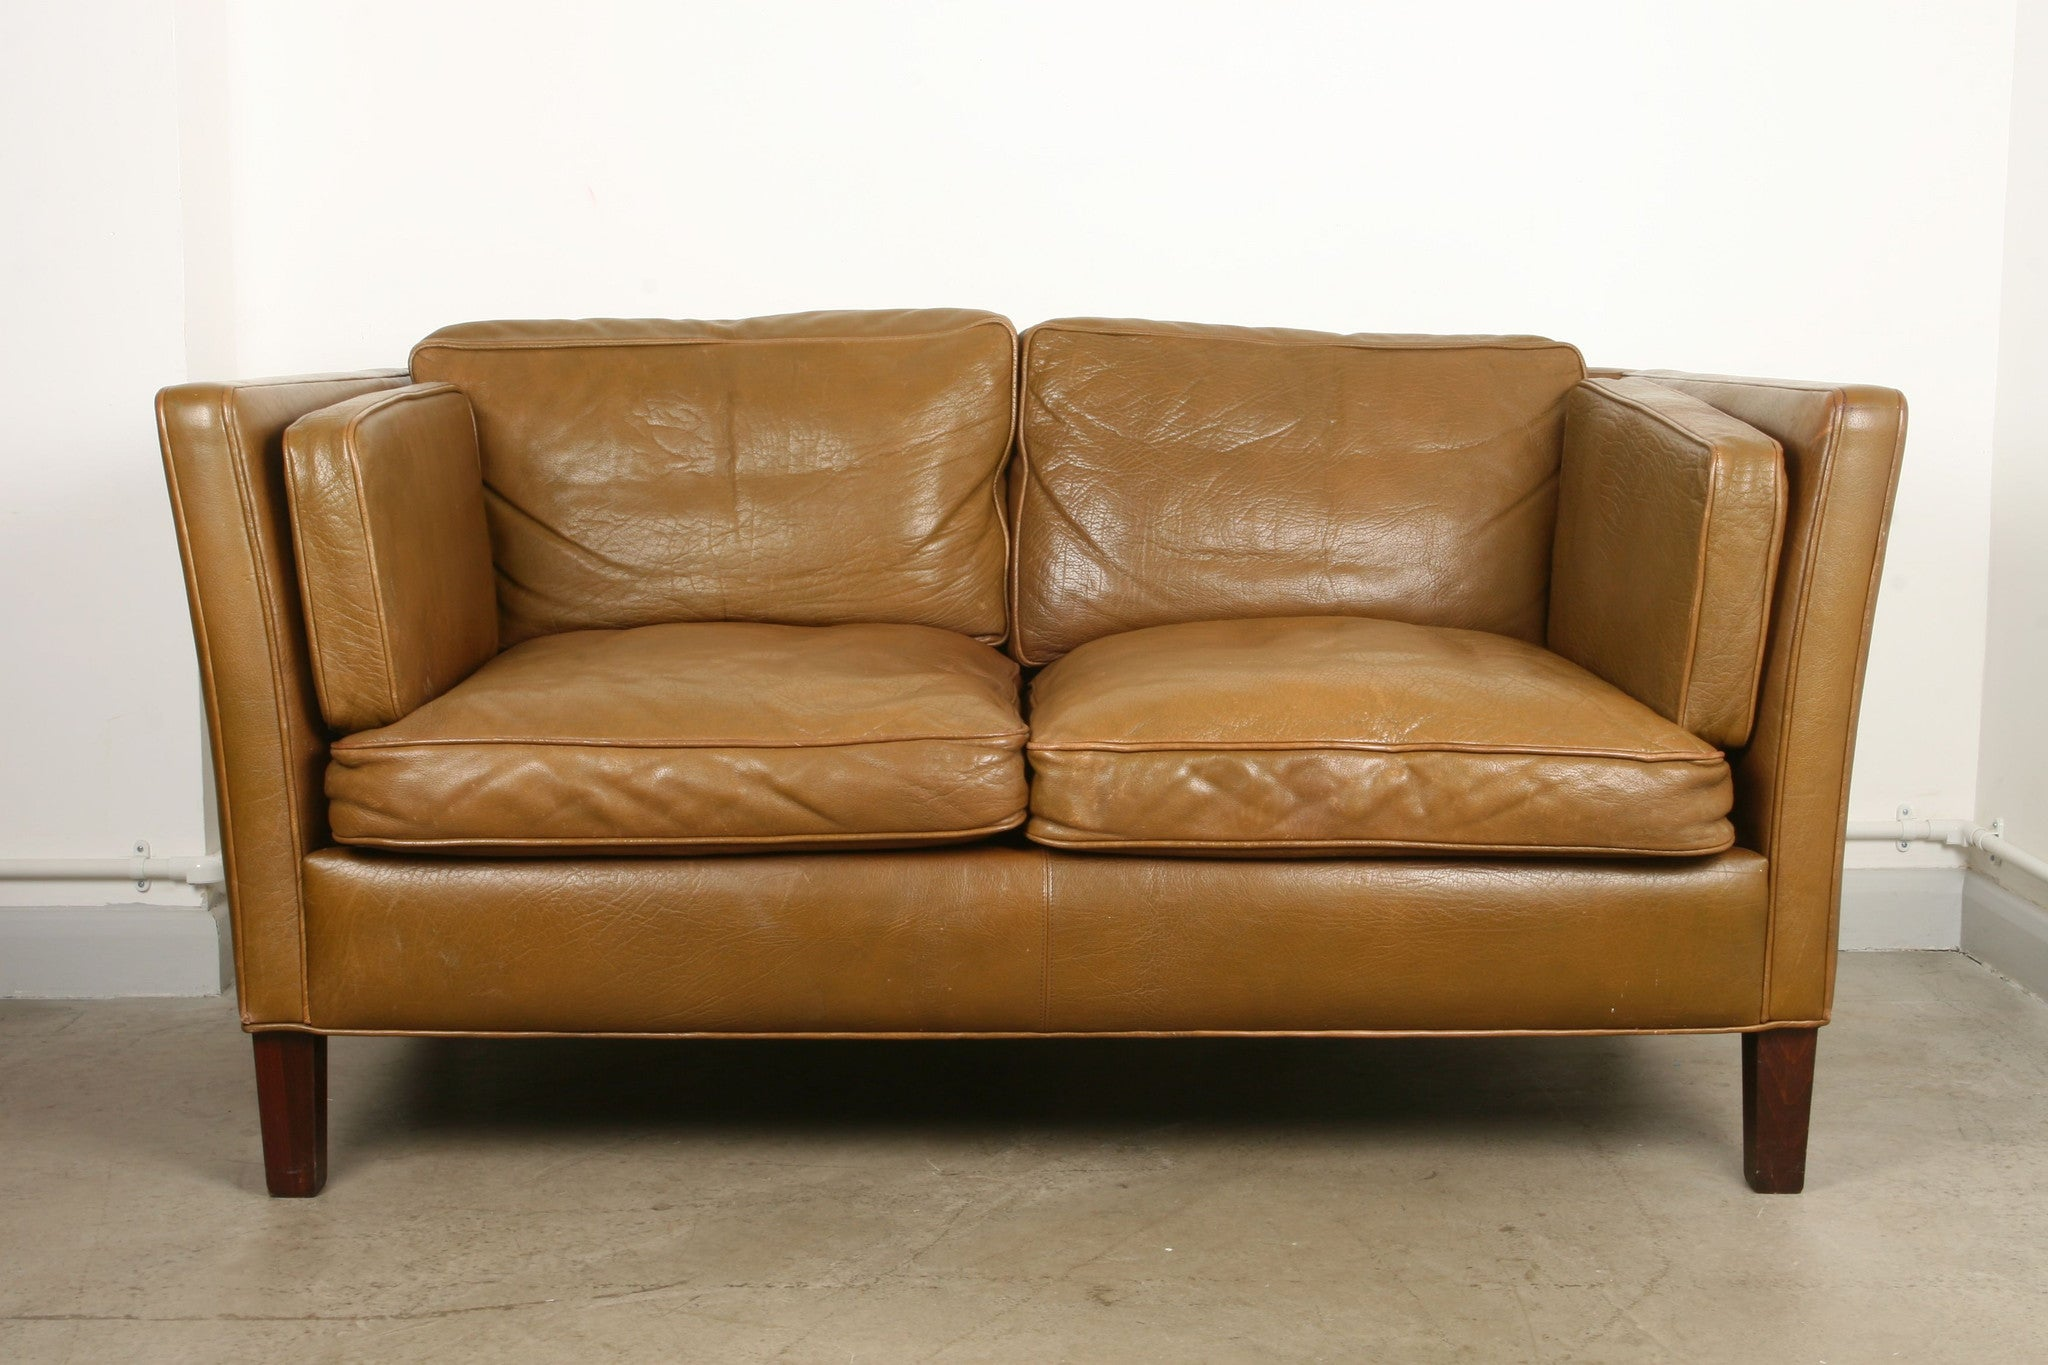 Two seat sofa in buffalo leather